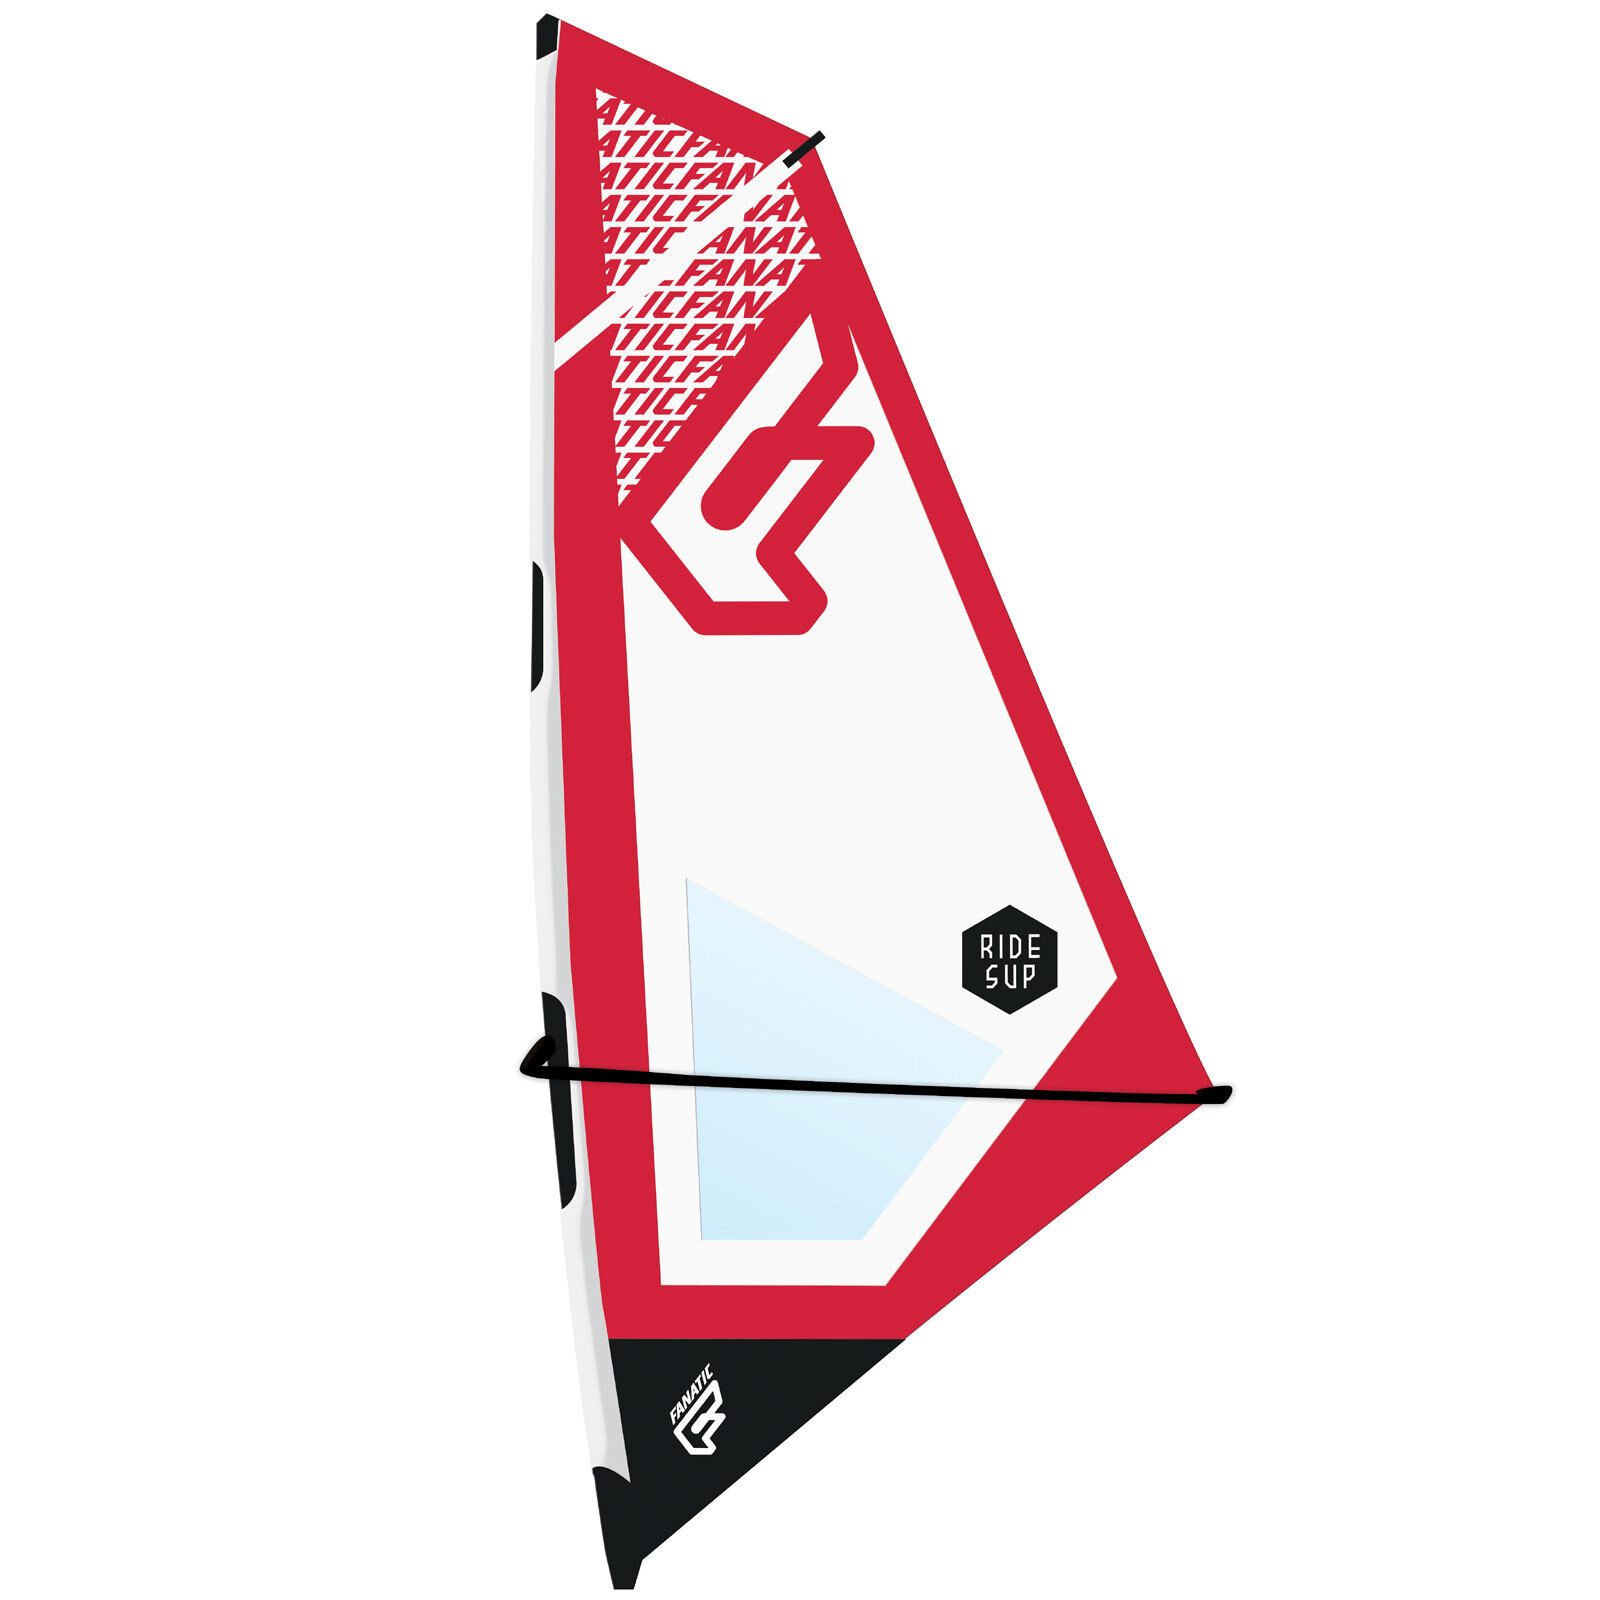 Fanatic Ride SUP Rigg Windsurf-Segel Stand Up Paddling… |